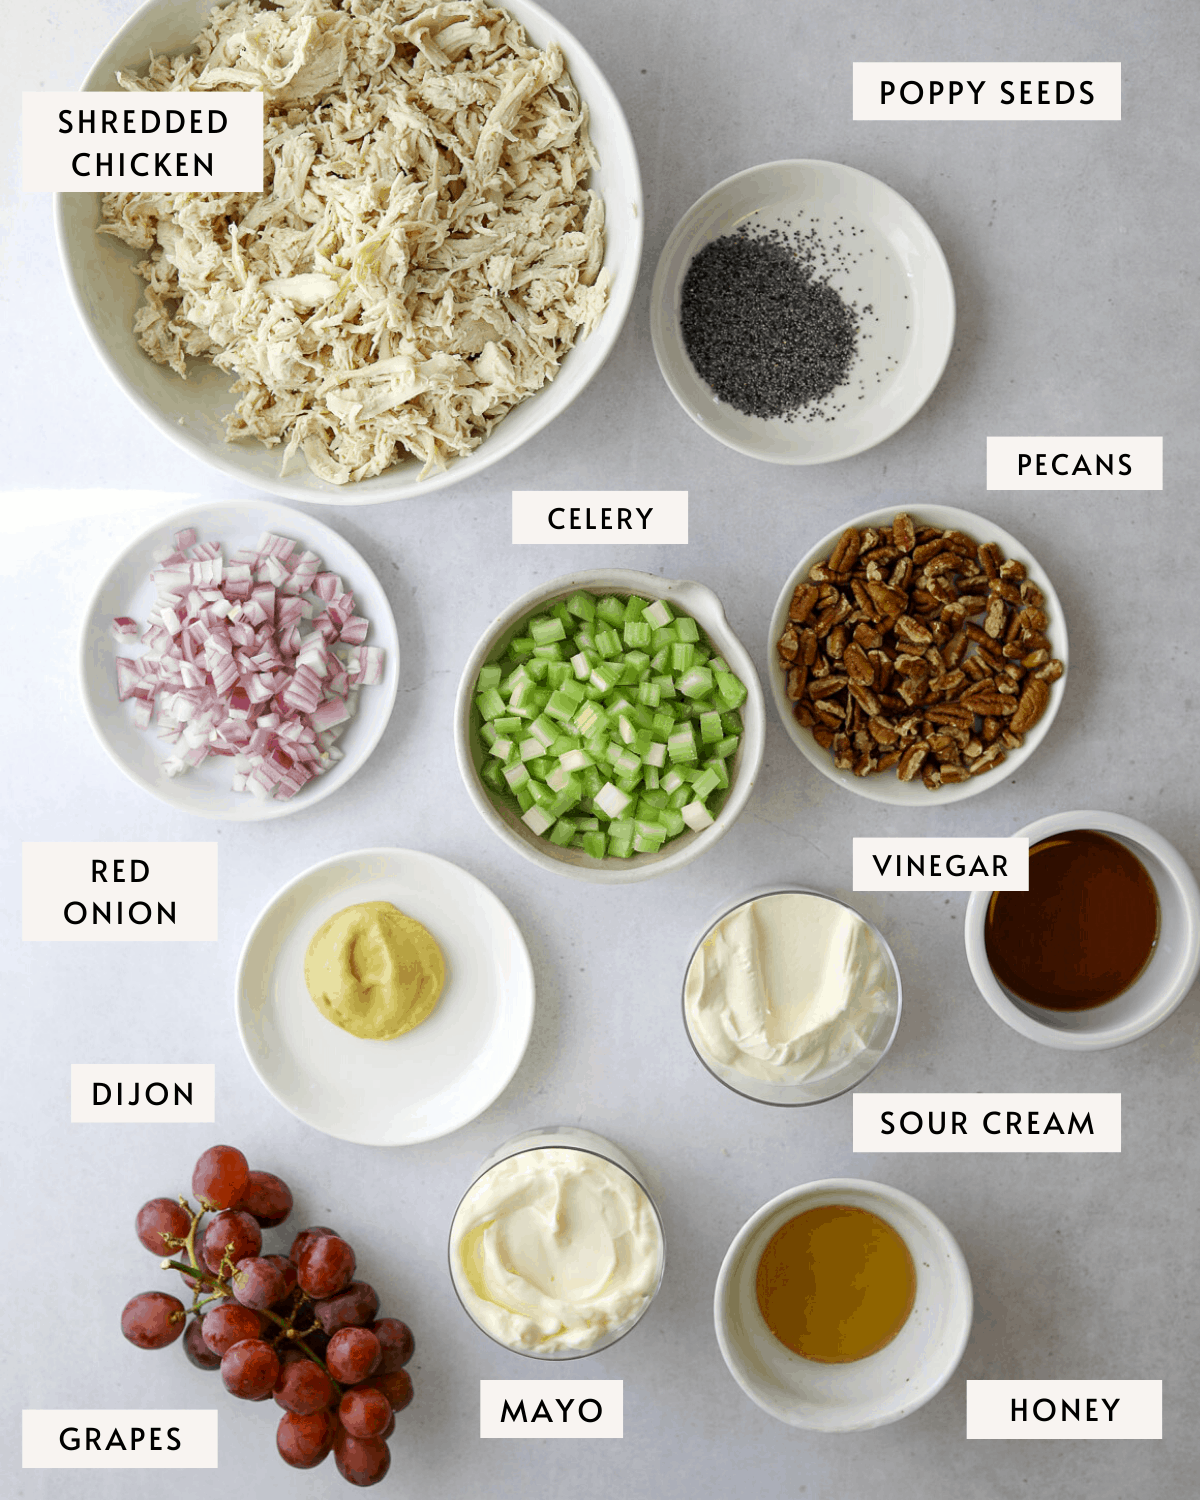 Sonoma Chicken Salad ingredients in individual bowls, shredded chicken, diced red onion, celery, grapes, toasted pecans, mayo etc